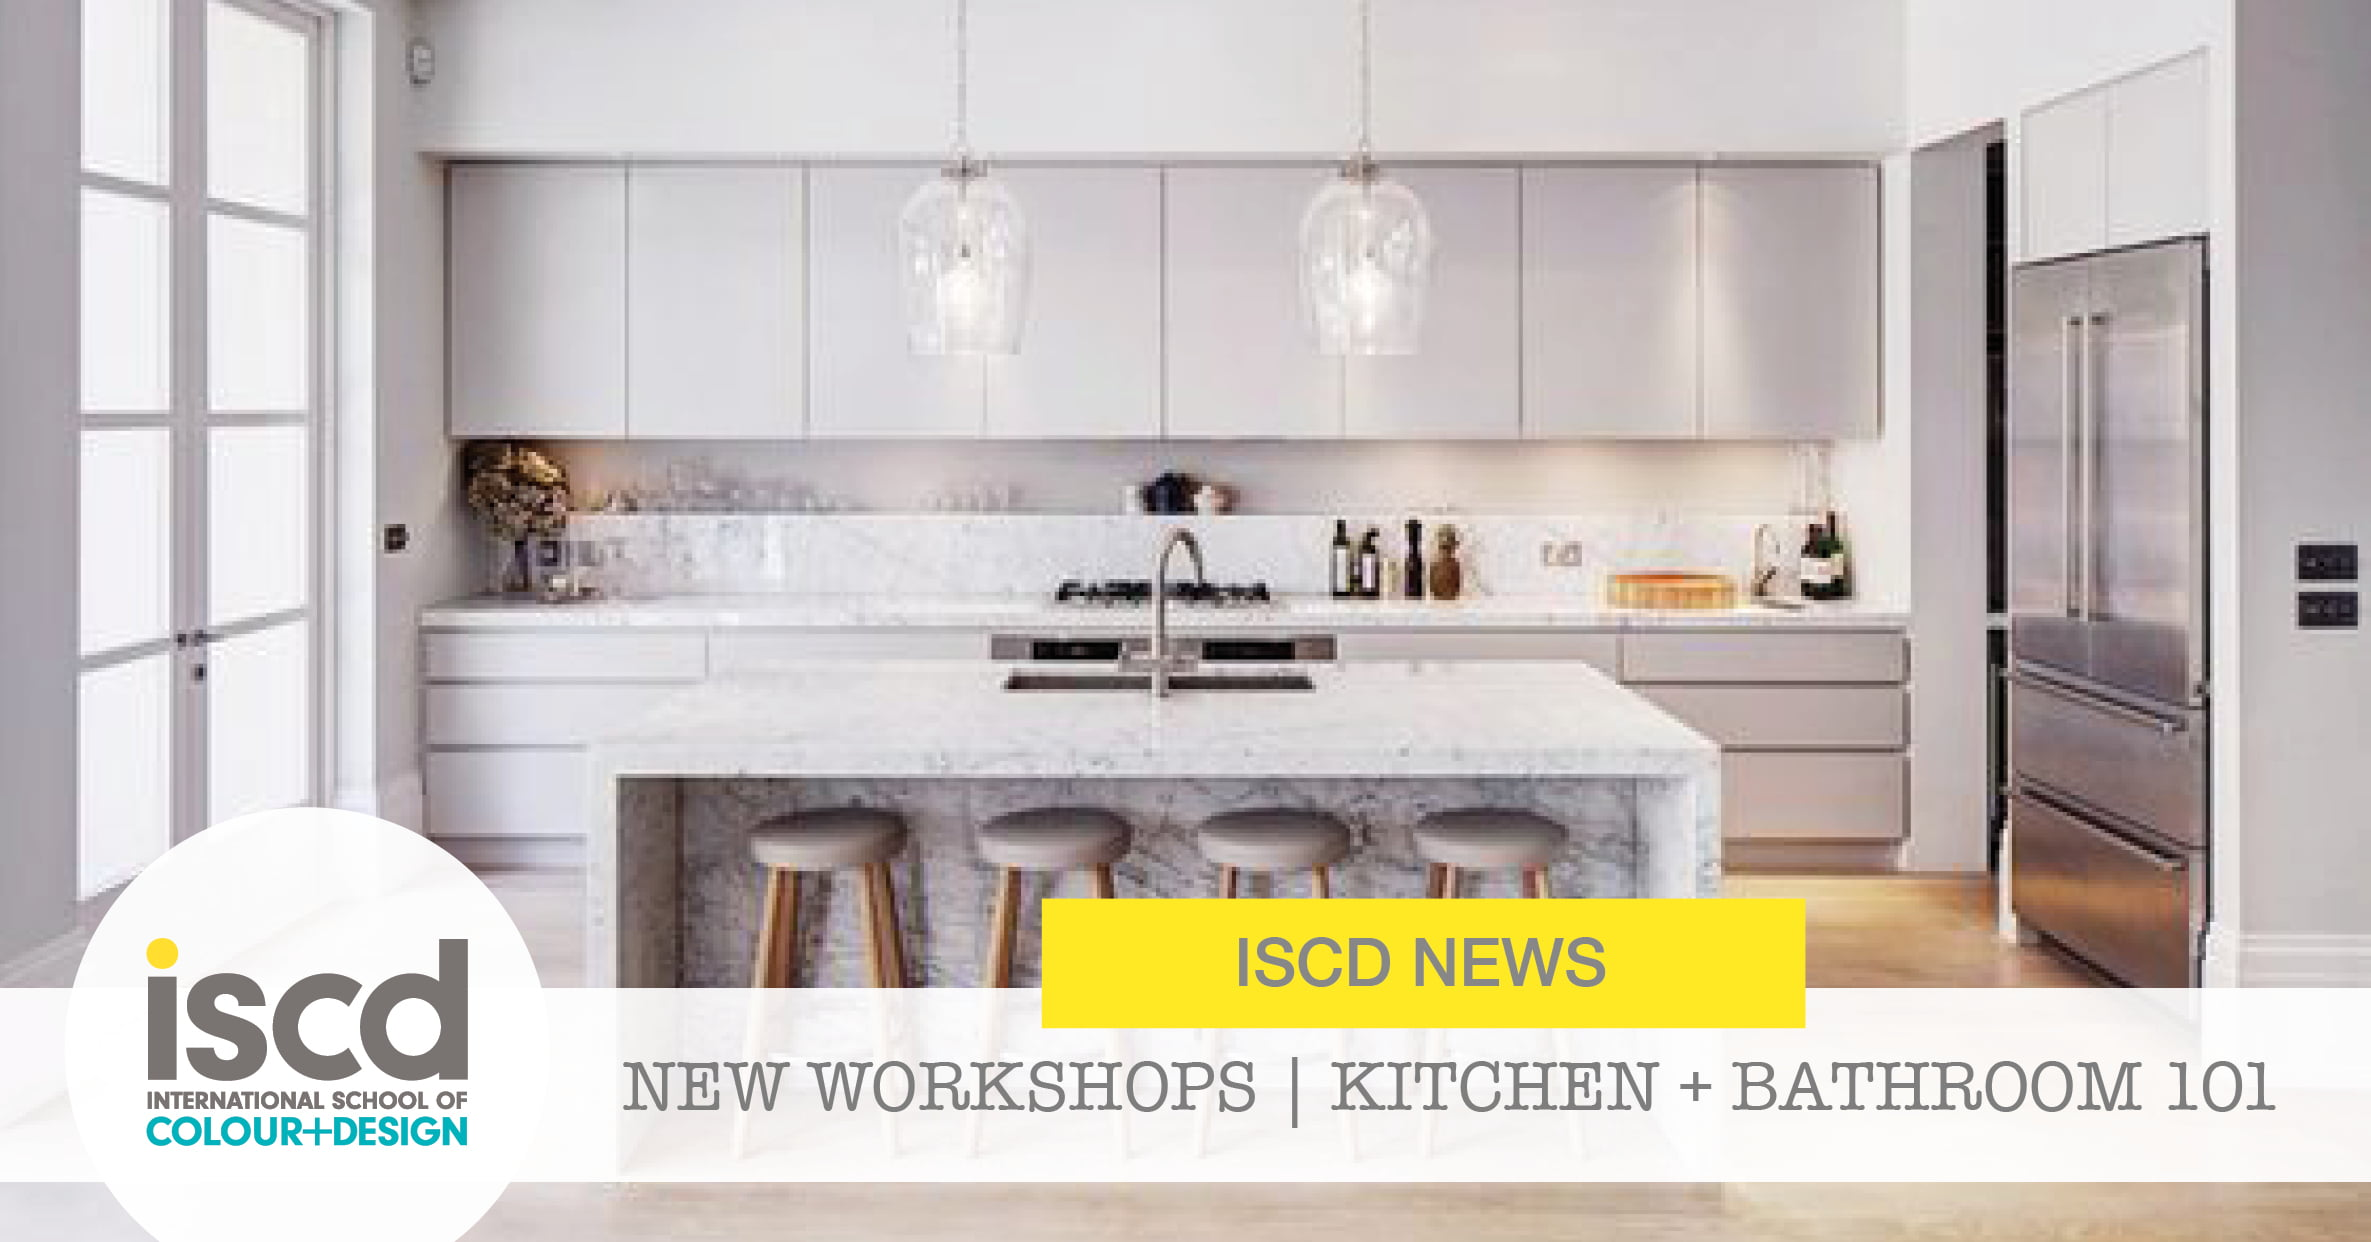 New Workshops | Kitchen + Bathroom 101 - iscd